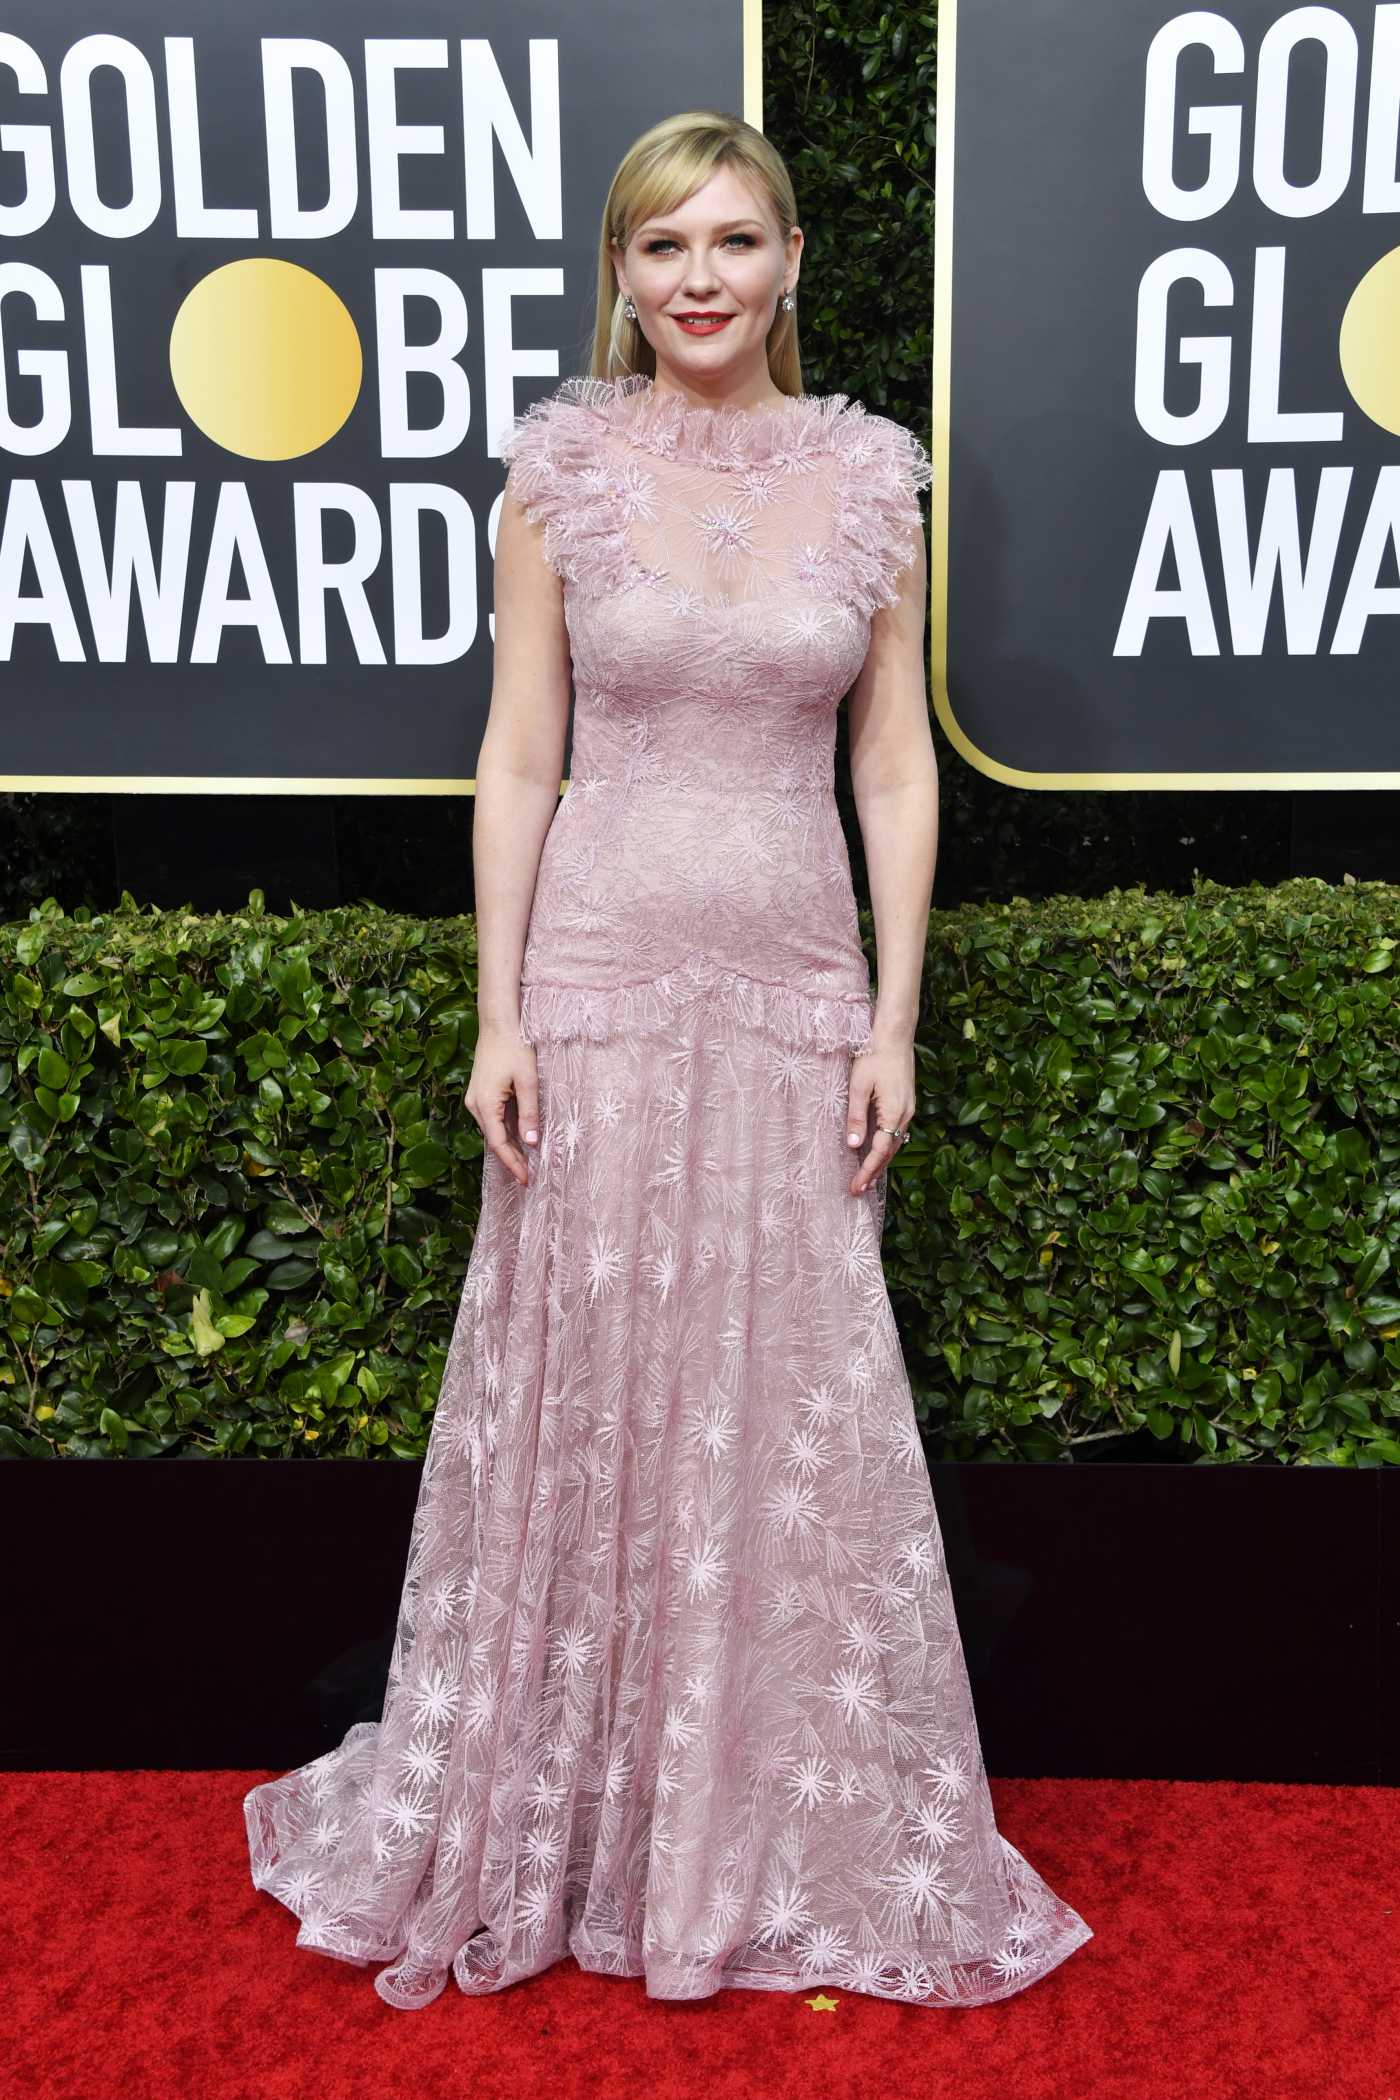 Kirsten Dunst Attends the 77th Annual Golden Globe Awards at the Beverly Hilton Hotel in Beverly Hills 01/05/2020